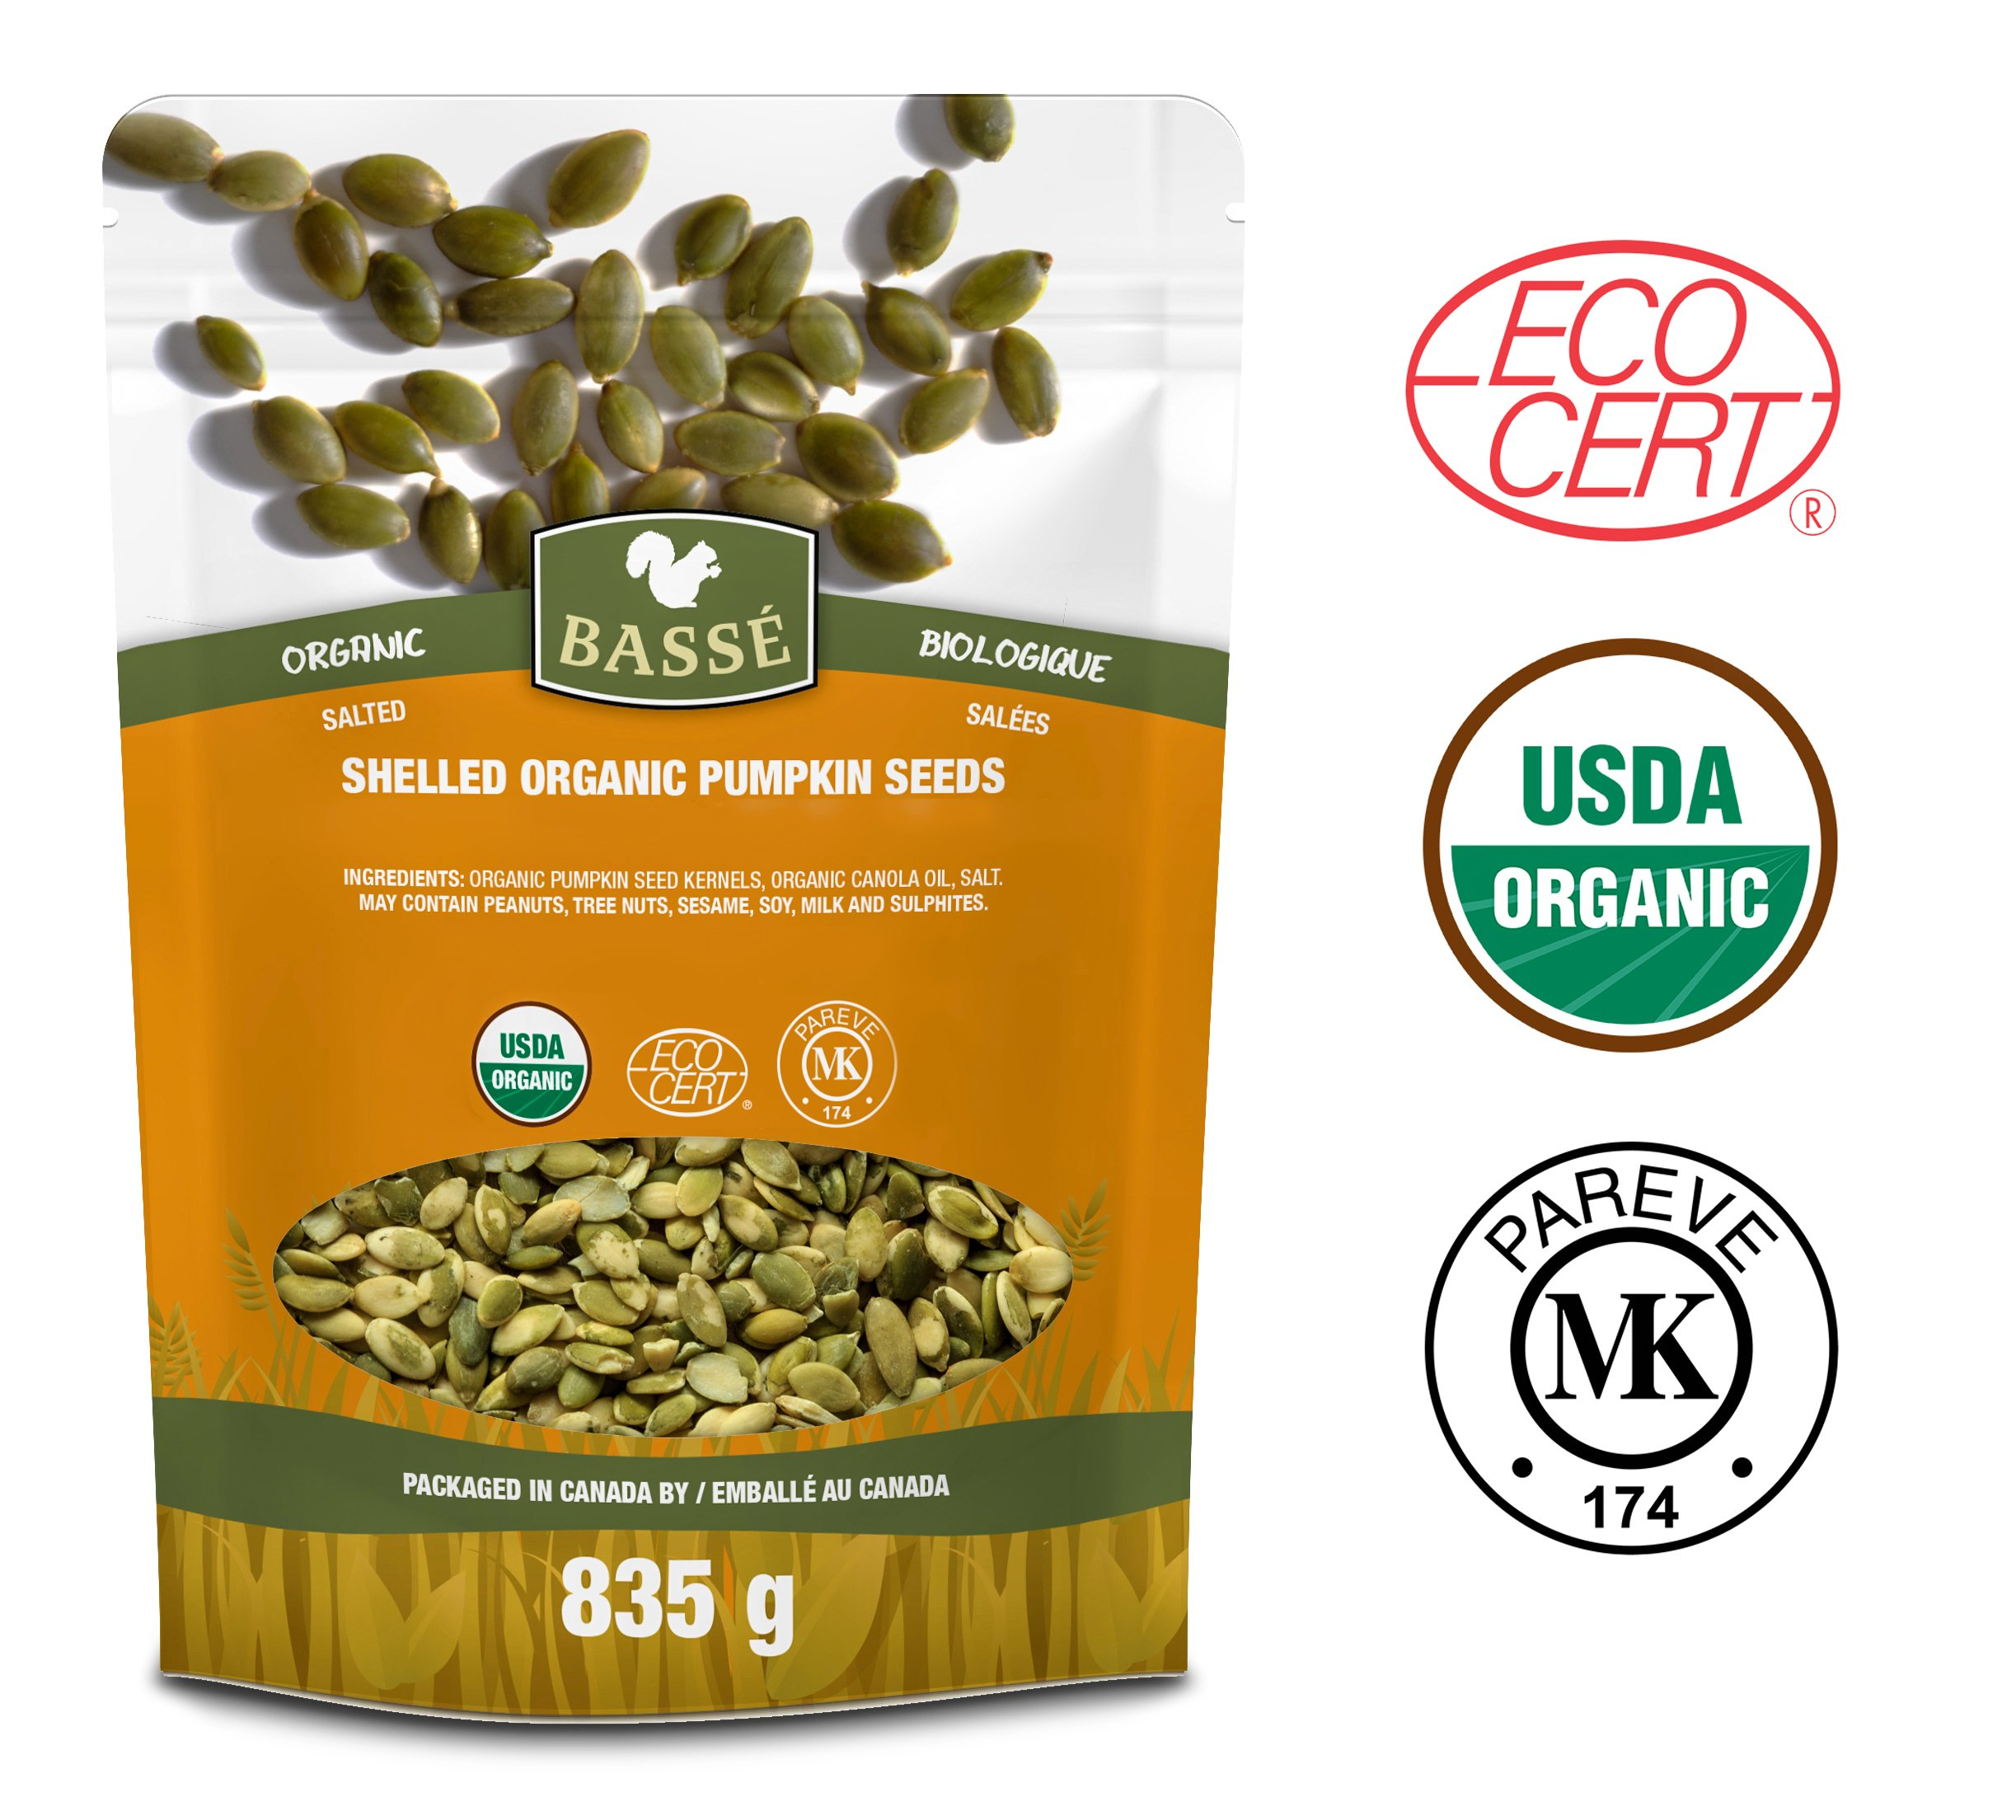 Basse Organic Pumpkin Seeds Kernels Nutritious, Salted, Wholesome, Superfood Snack, 29oz, (835g)